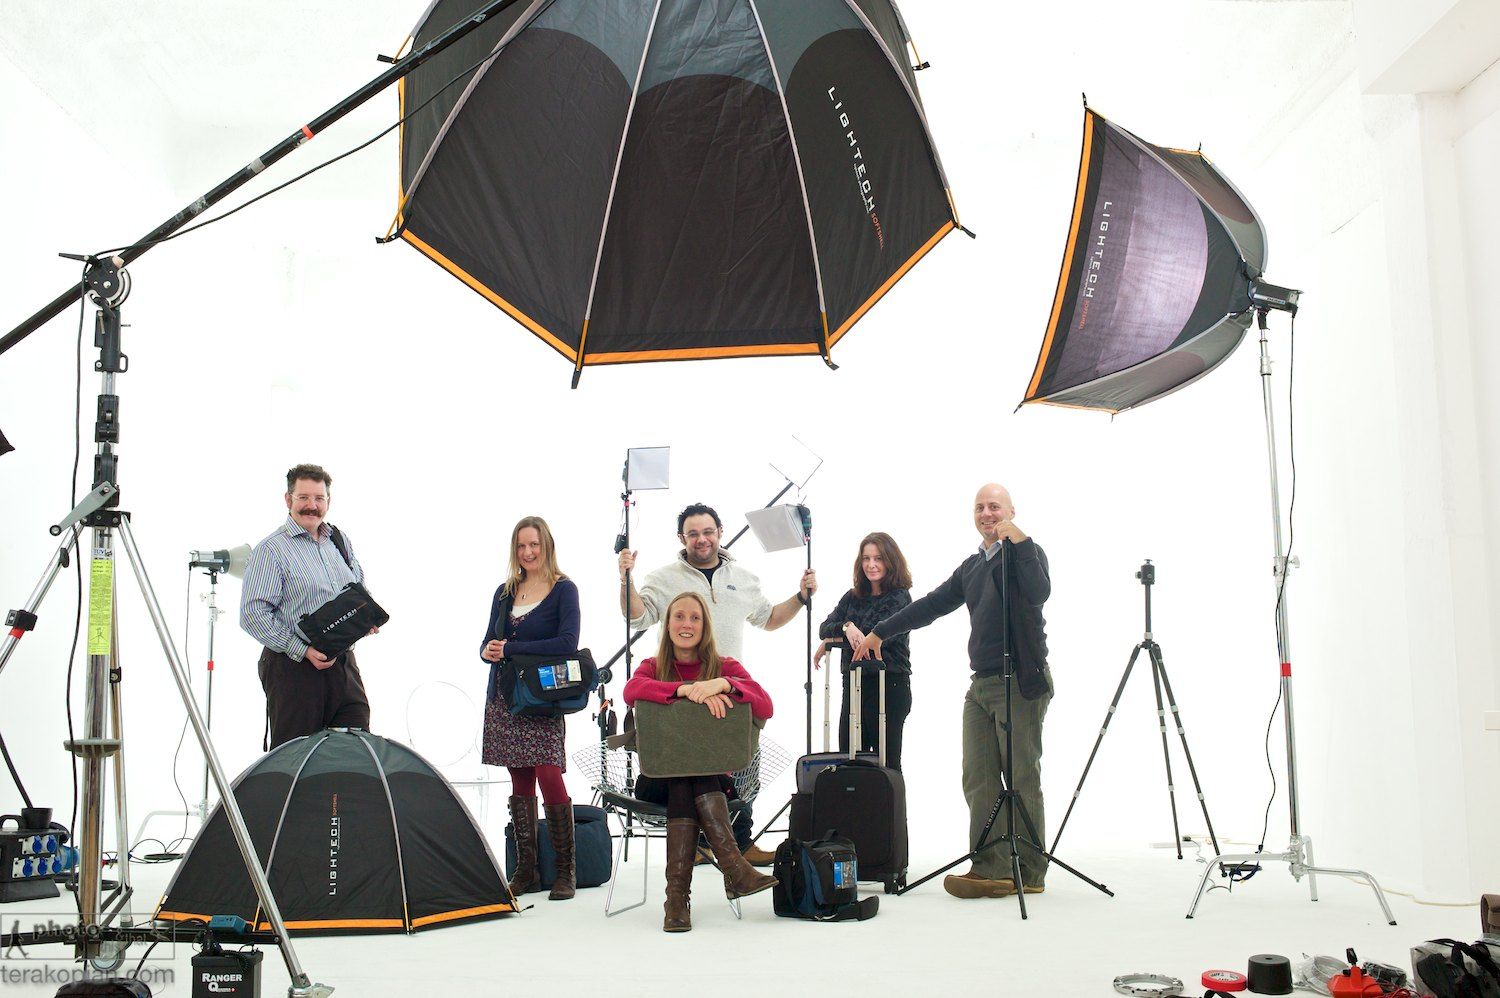 Members of the Snapperstuff team at Tower Bridge Studios in London. The team with some of the products from Think Tank Photo, KLM, Lightech and LumiQuest.  December 08, 2012. Photo: Ant Upton